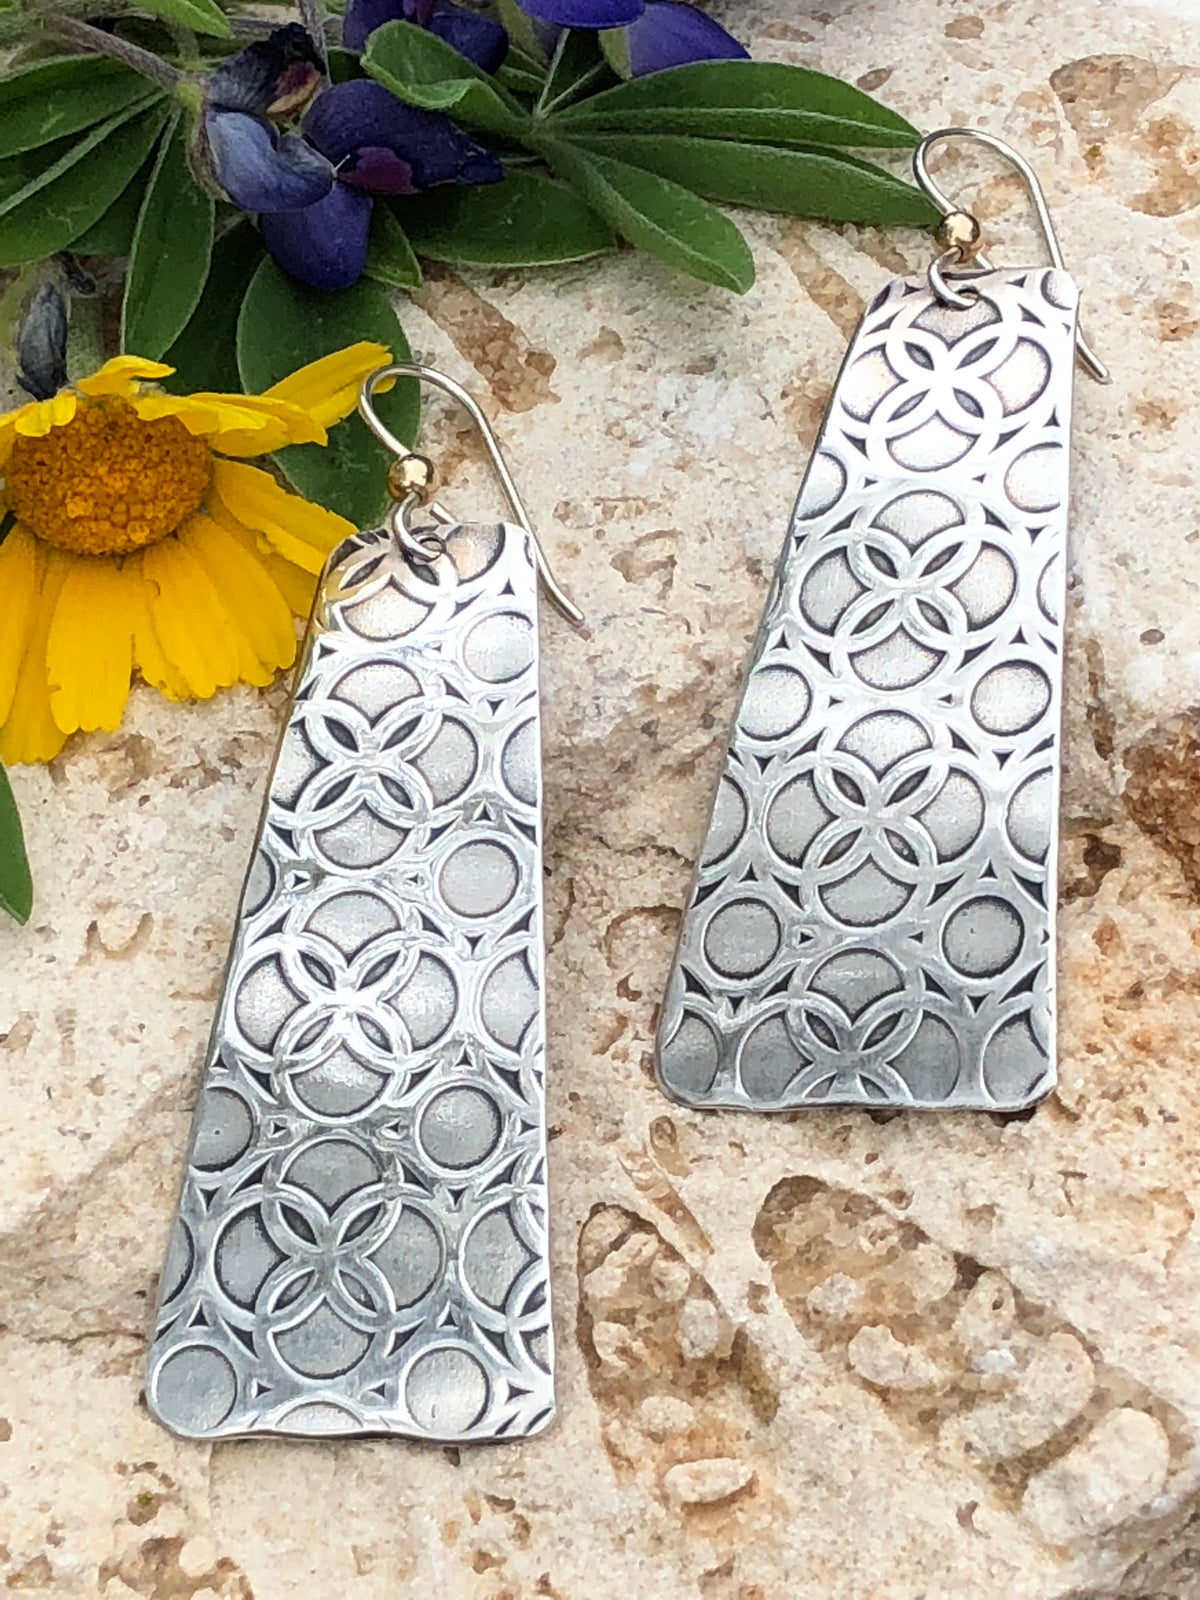 Sterling Silver Textured Earrings - $40 + $25 makerspace and materials kit fee